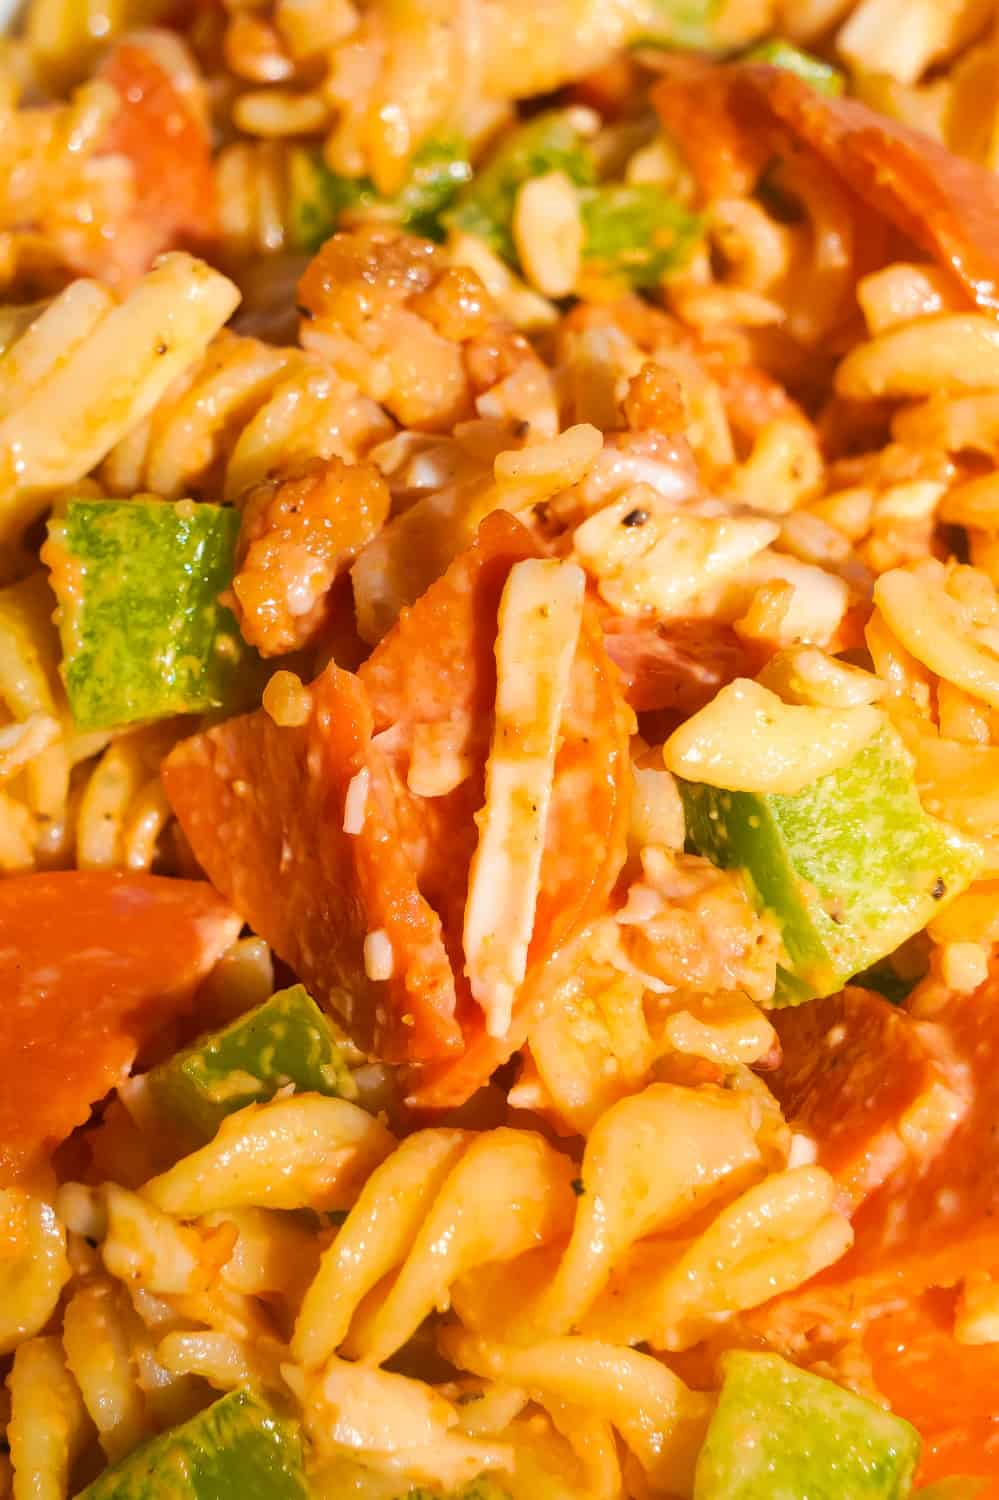 Pizza Pasta Salad is the perfect summer side dish. This pasta salad is loaded with pepperoni, bacon, green peppers and mozzarella cheese.